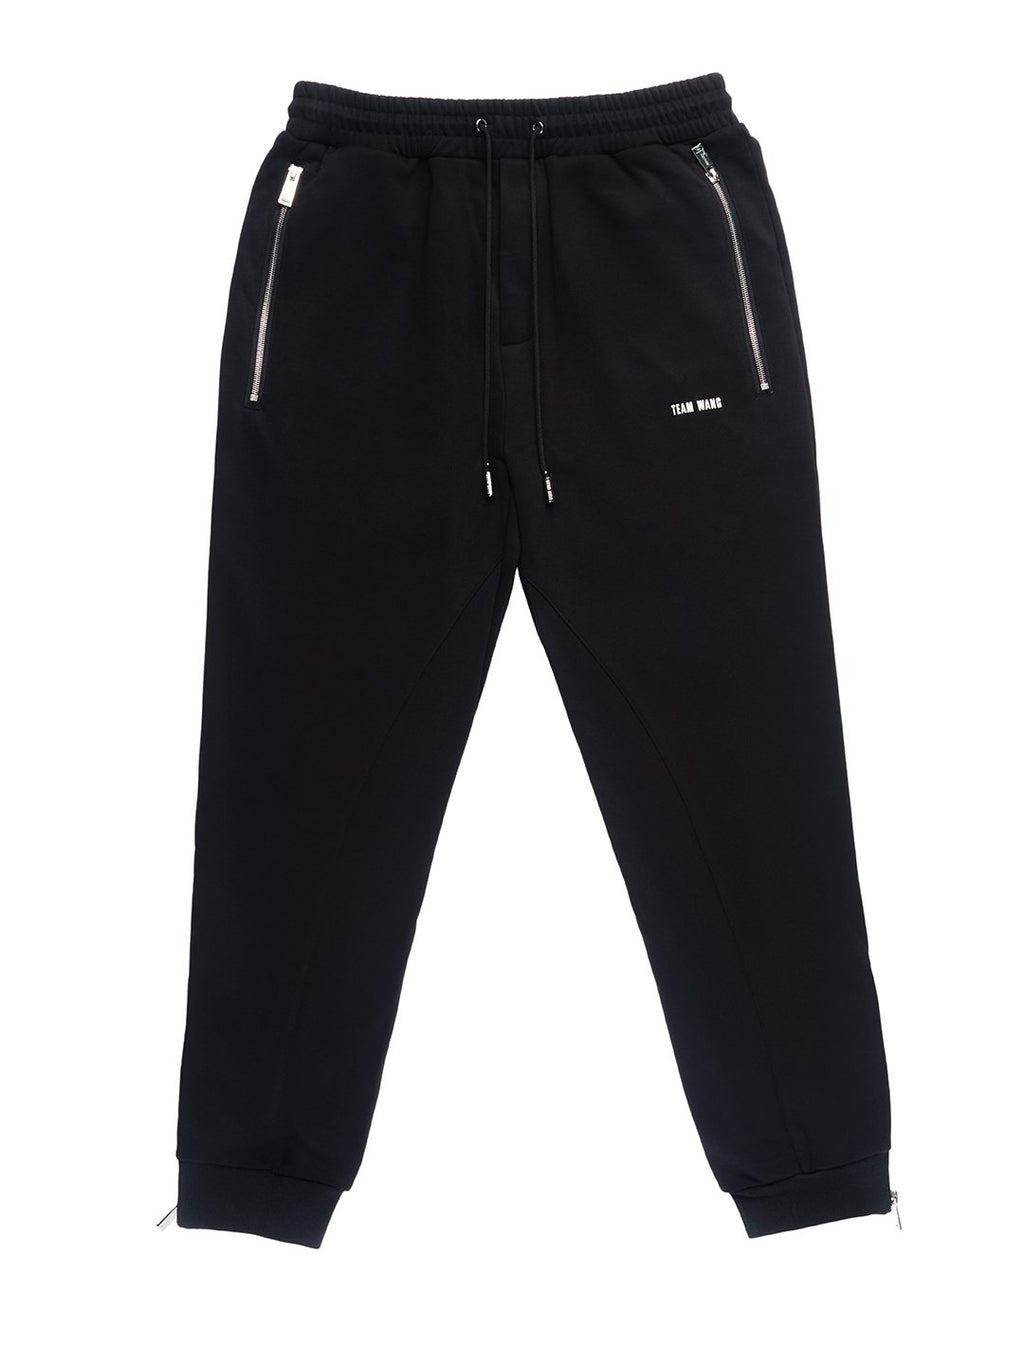 TEAM WANG TRACK PANTS